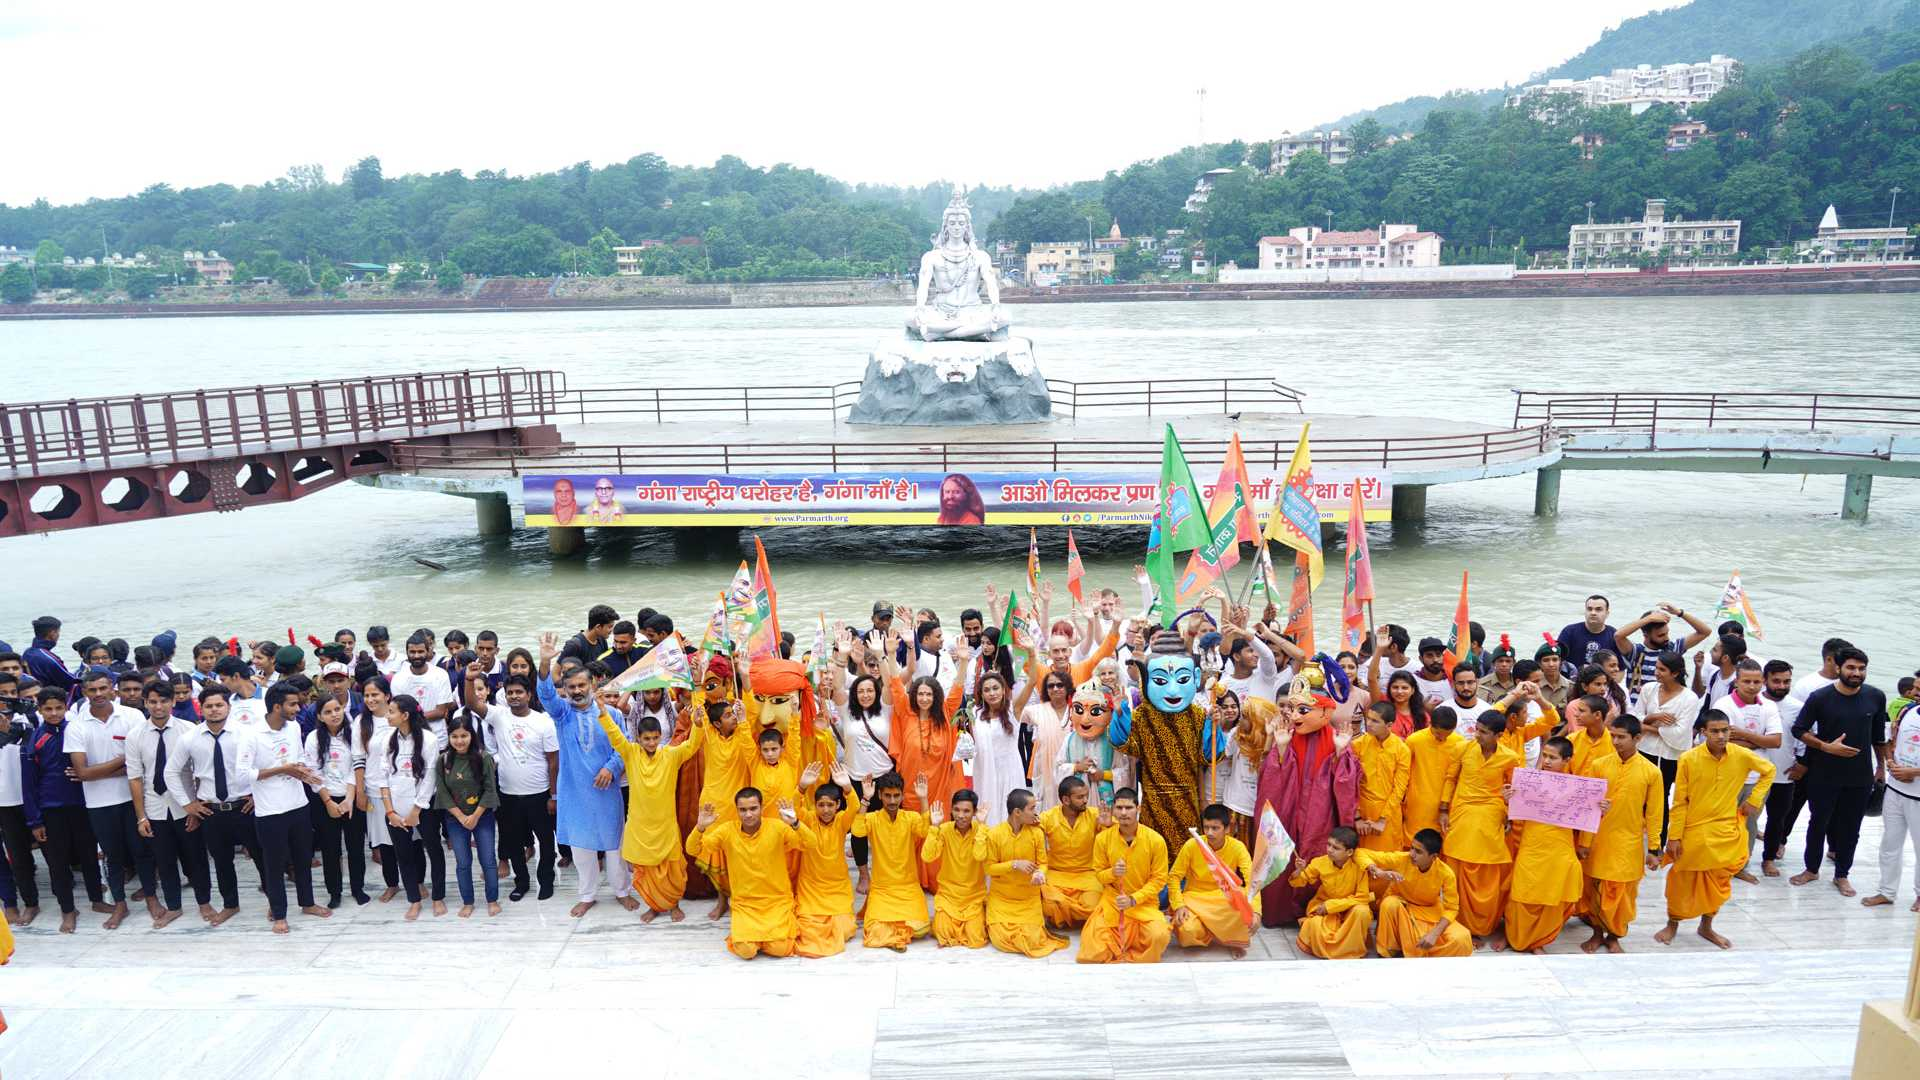 Walk for water event with Parmarth Ashram in Rishikesh Uttrakhand